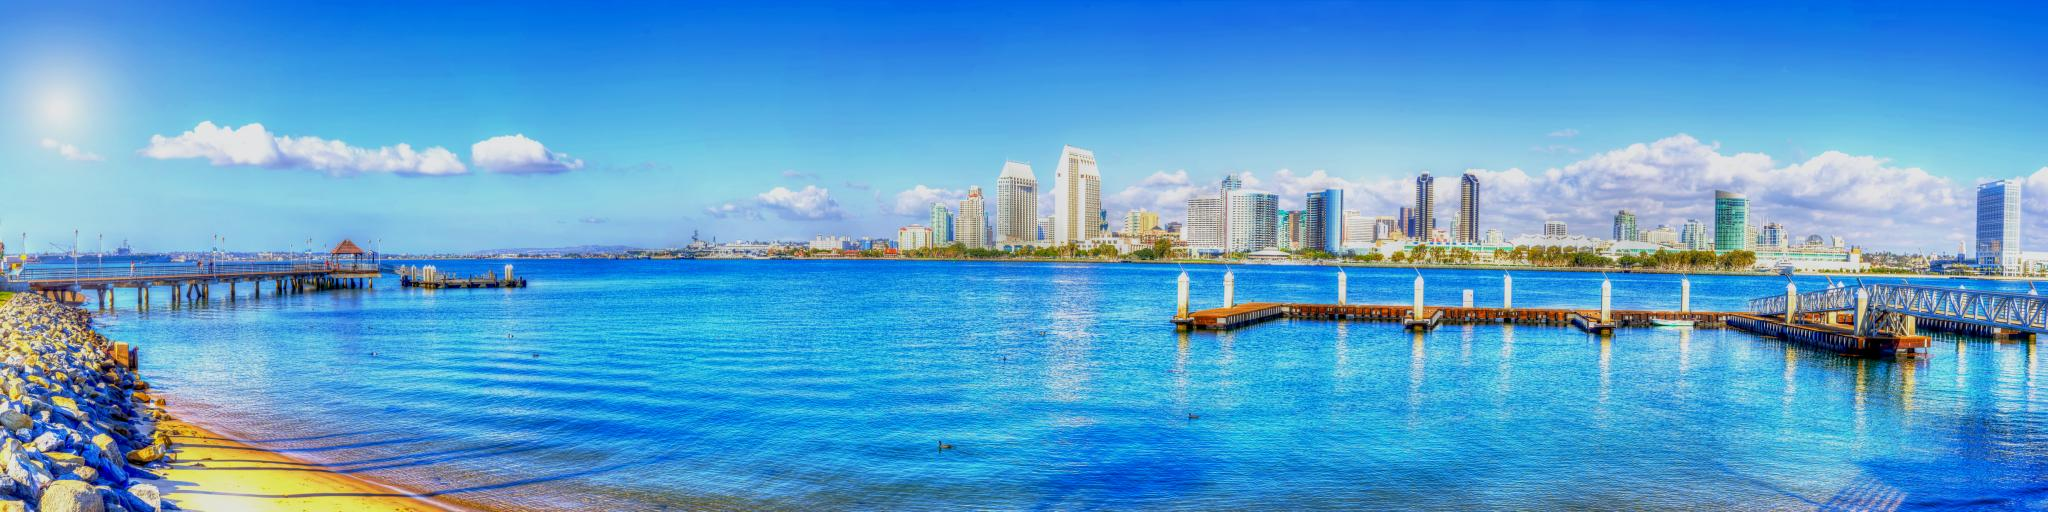 A panoramic view of the skyline of San Diego   with a thick white sheet of stretched out cotton-like clouds in a blue sky reflecting the sea in a sunny morning